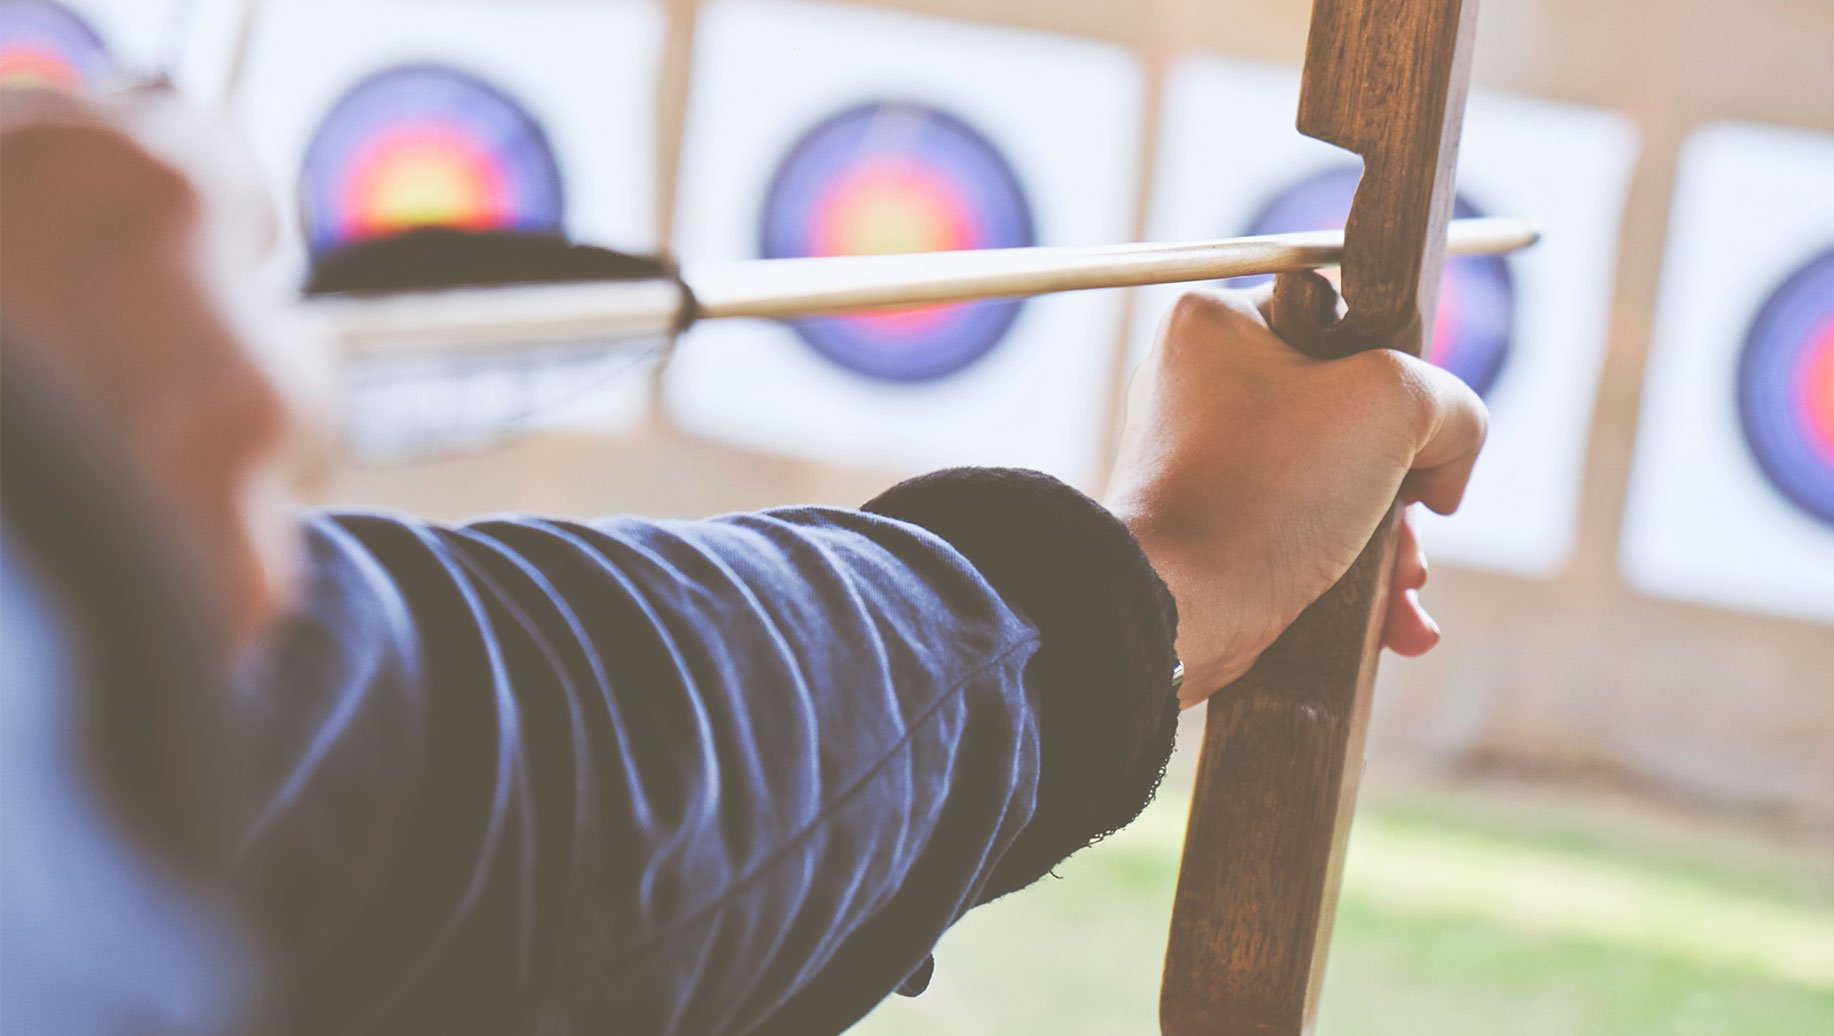 Insurance Producers & Agents: Doing These 9 Things Will Tank Your Sales Goals